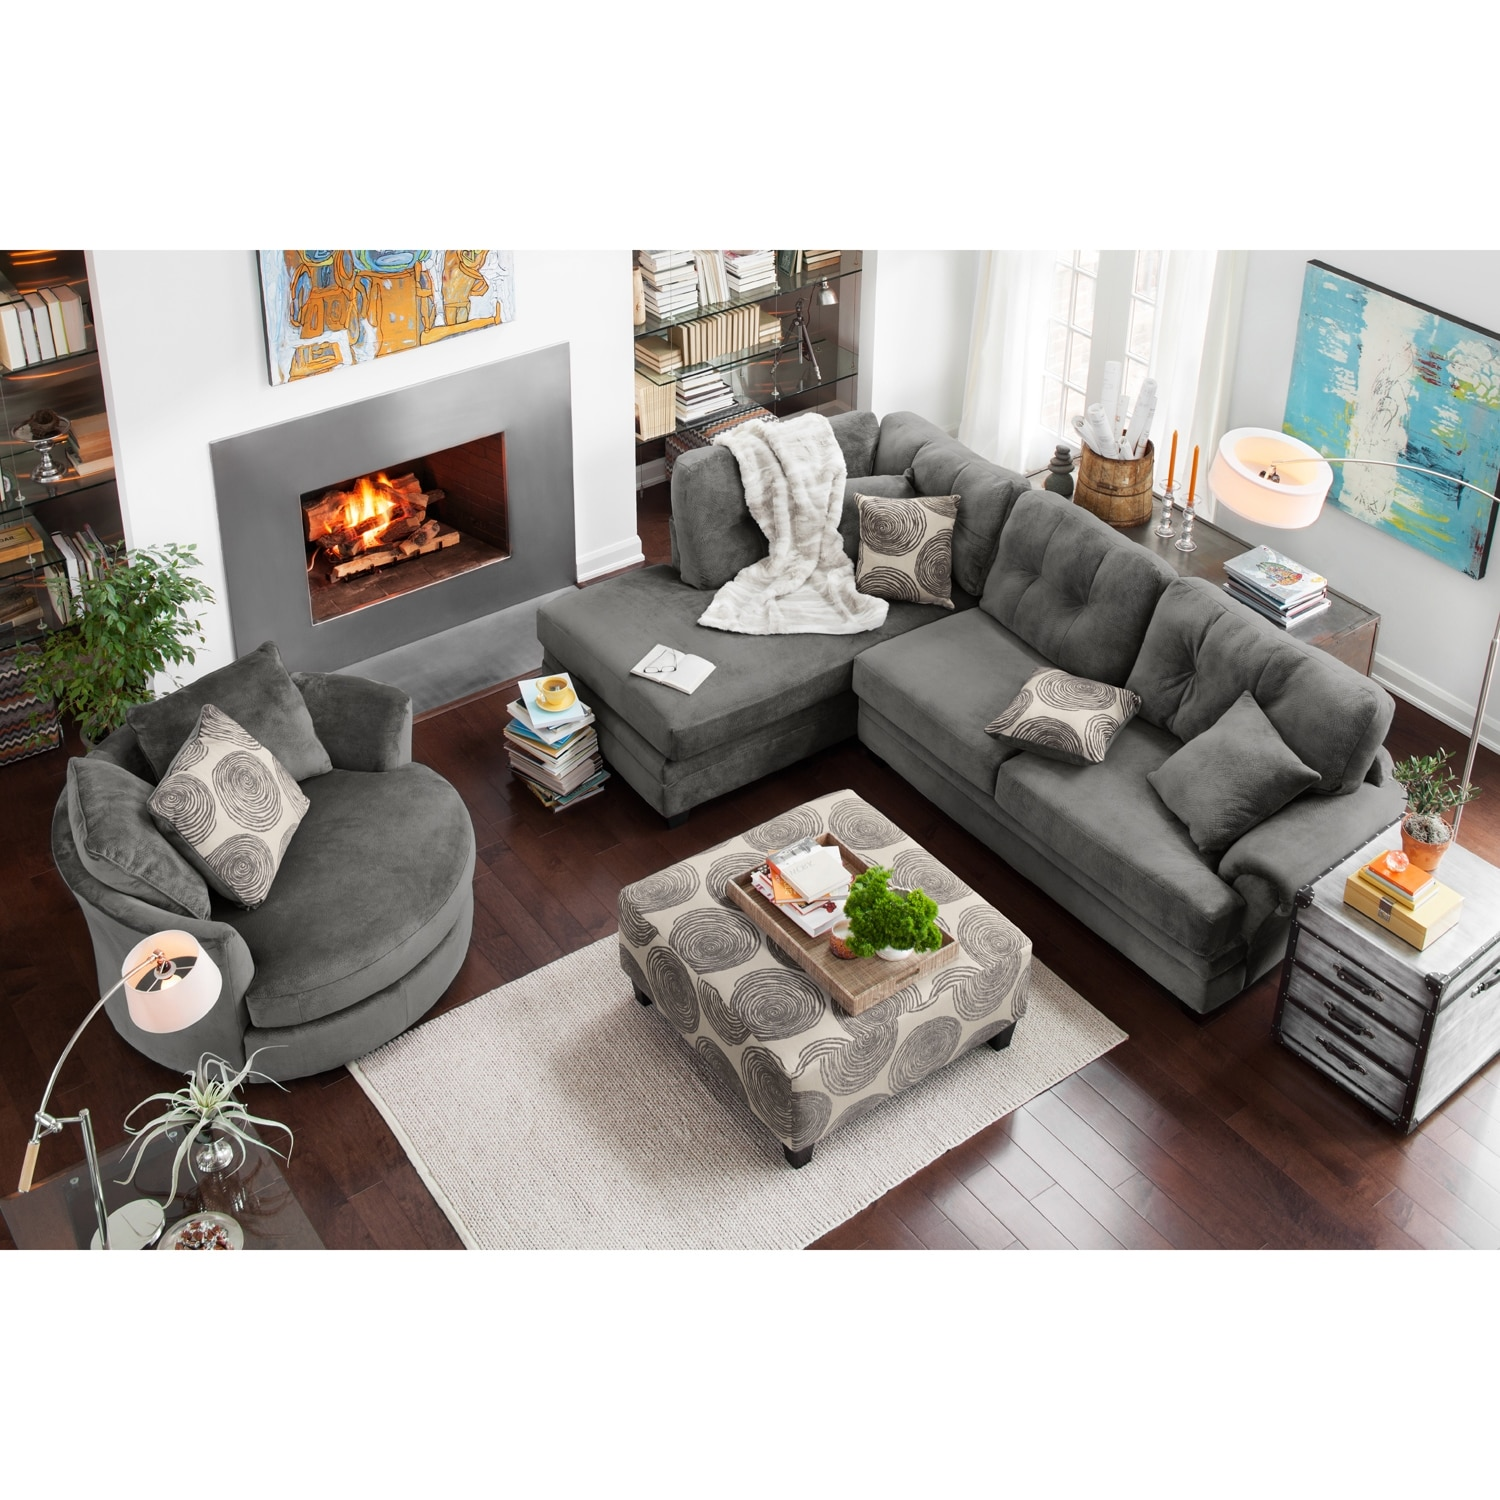 Cordelle 2 piece left facing chaise sectional gray value city furniture and mattresses Home design golden city furniture